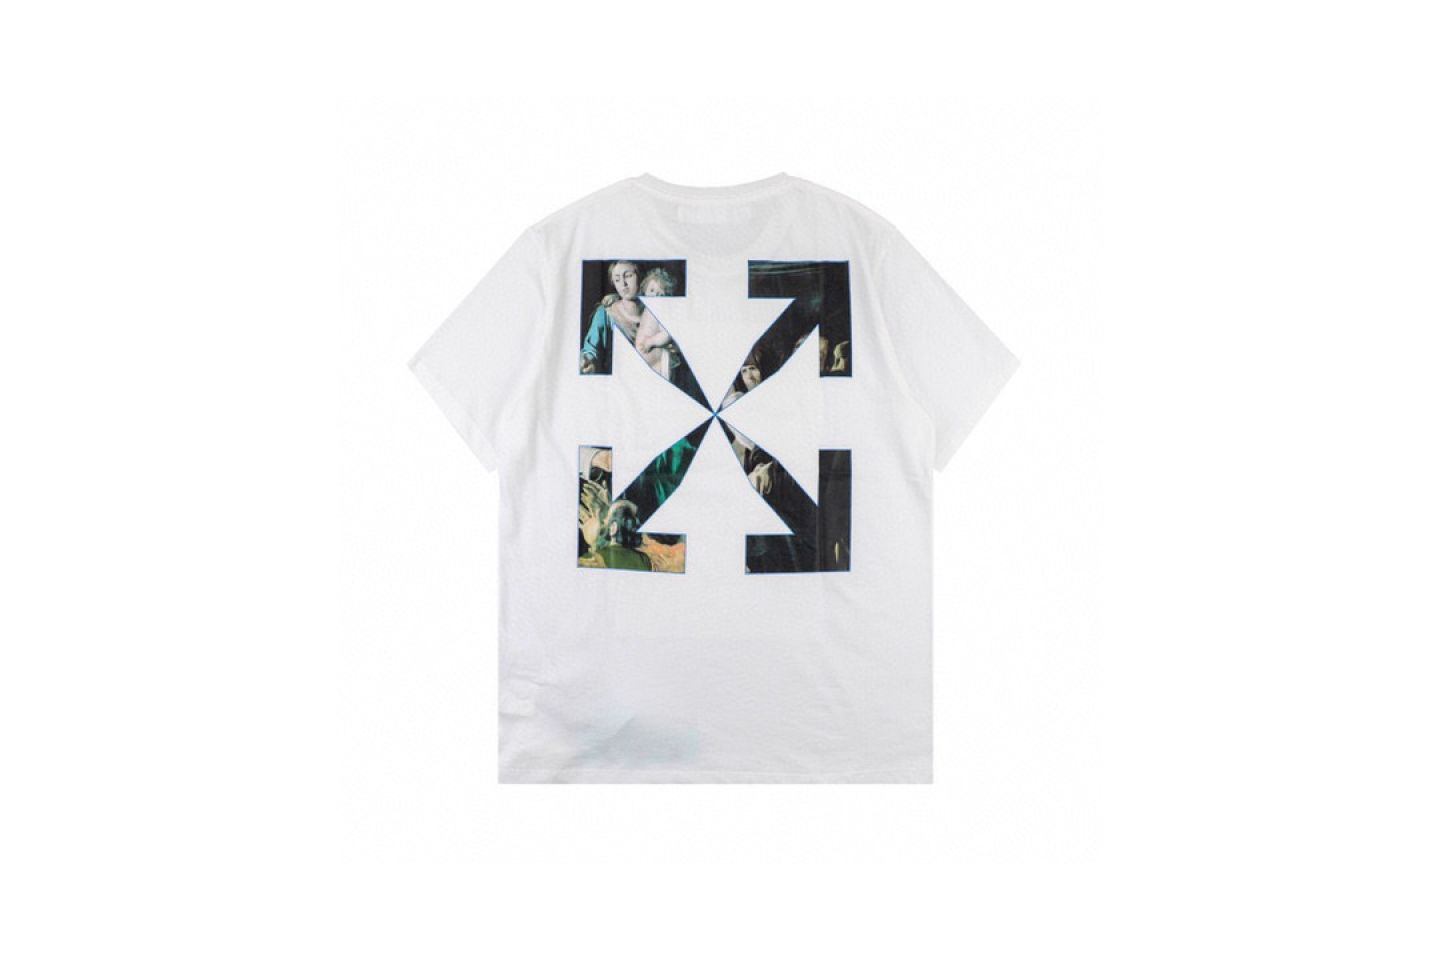 Shirt OFF WHITE 20FW big religious arrow short sleeve T-shirt 5 off_white_20fw_big_religious_arrow_short_sleeve_t_shirt__5